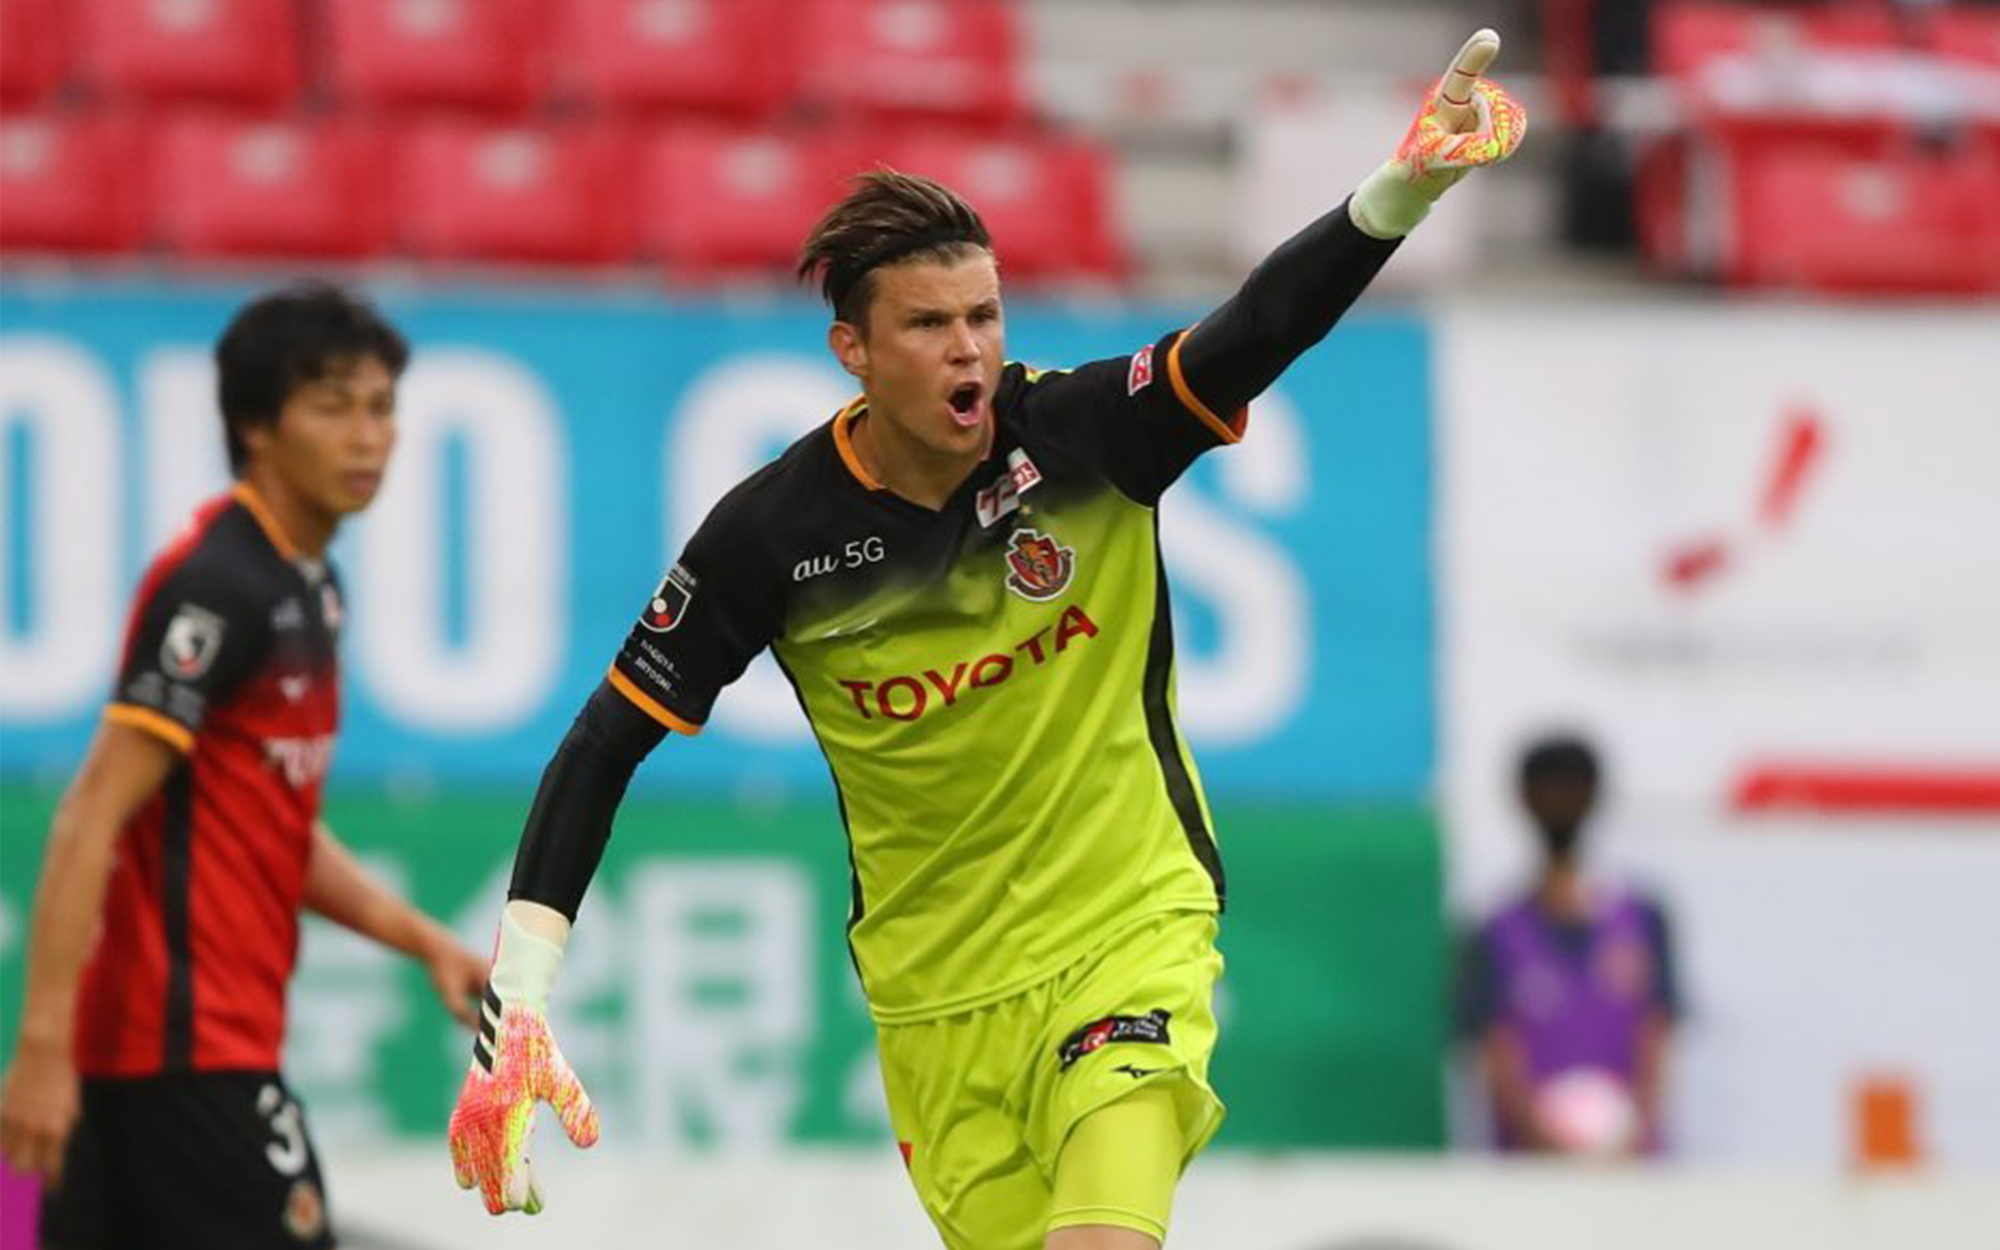 Aussies Abroad: Langerak breaks club record, Ryan's Brighton share spoils against Liverpool